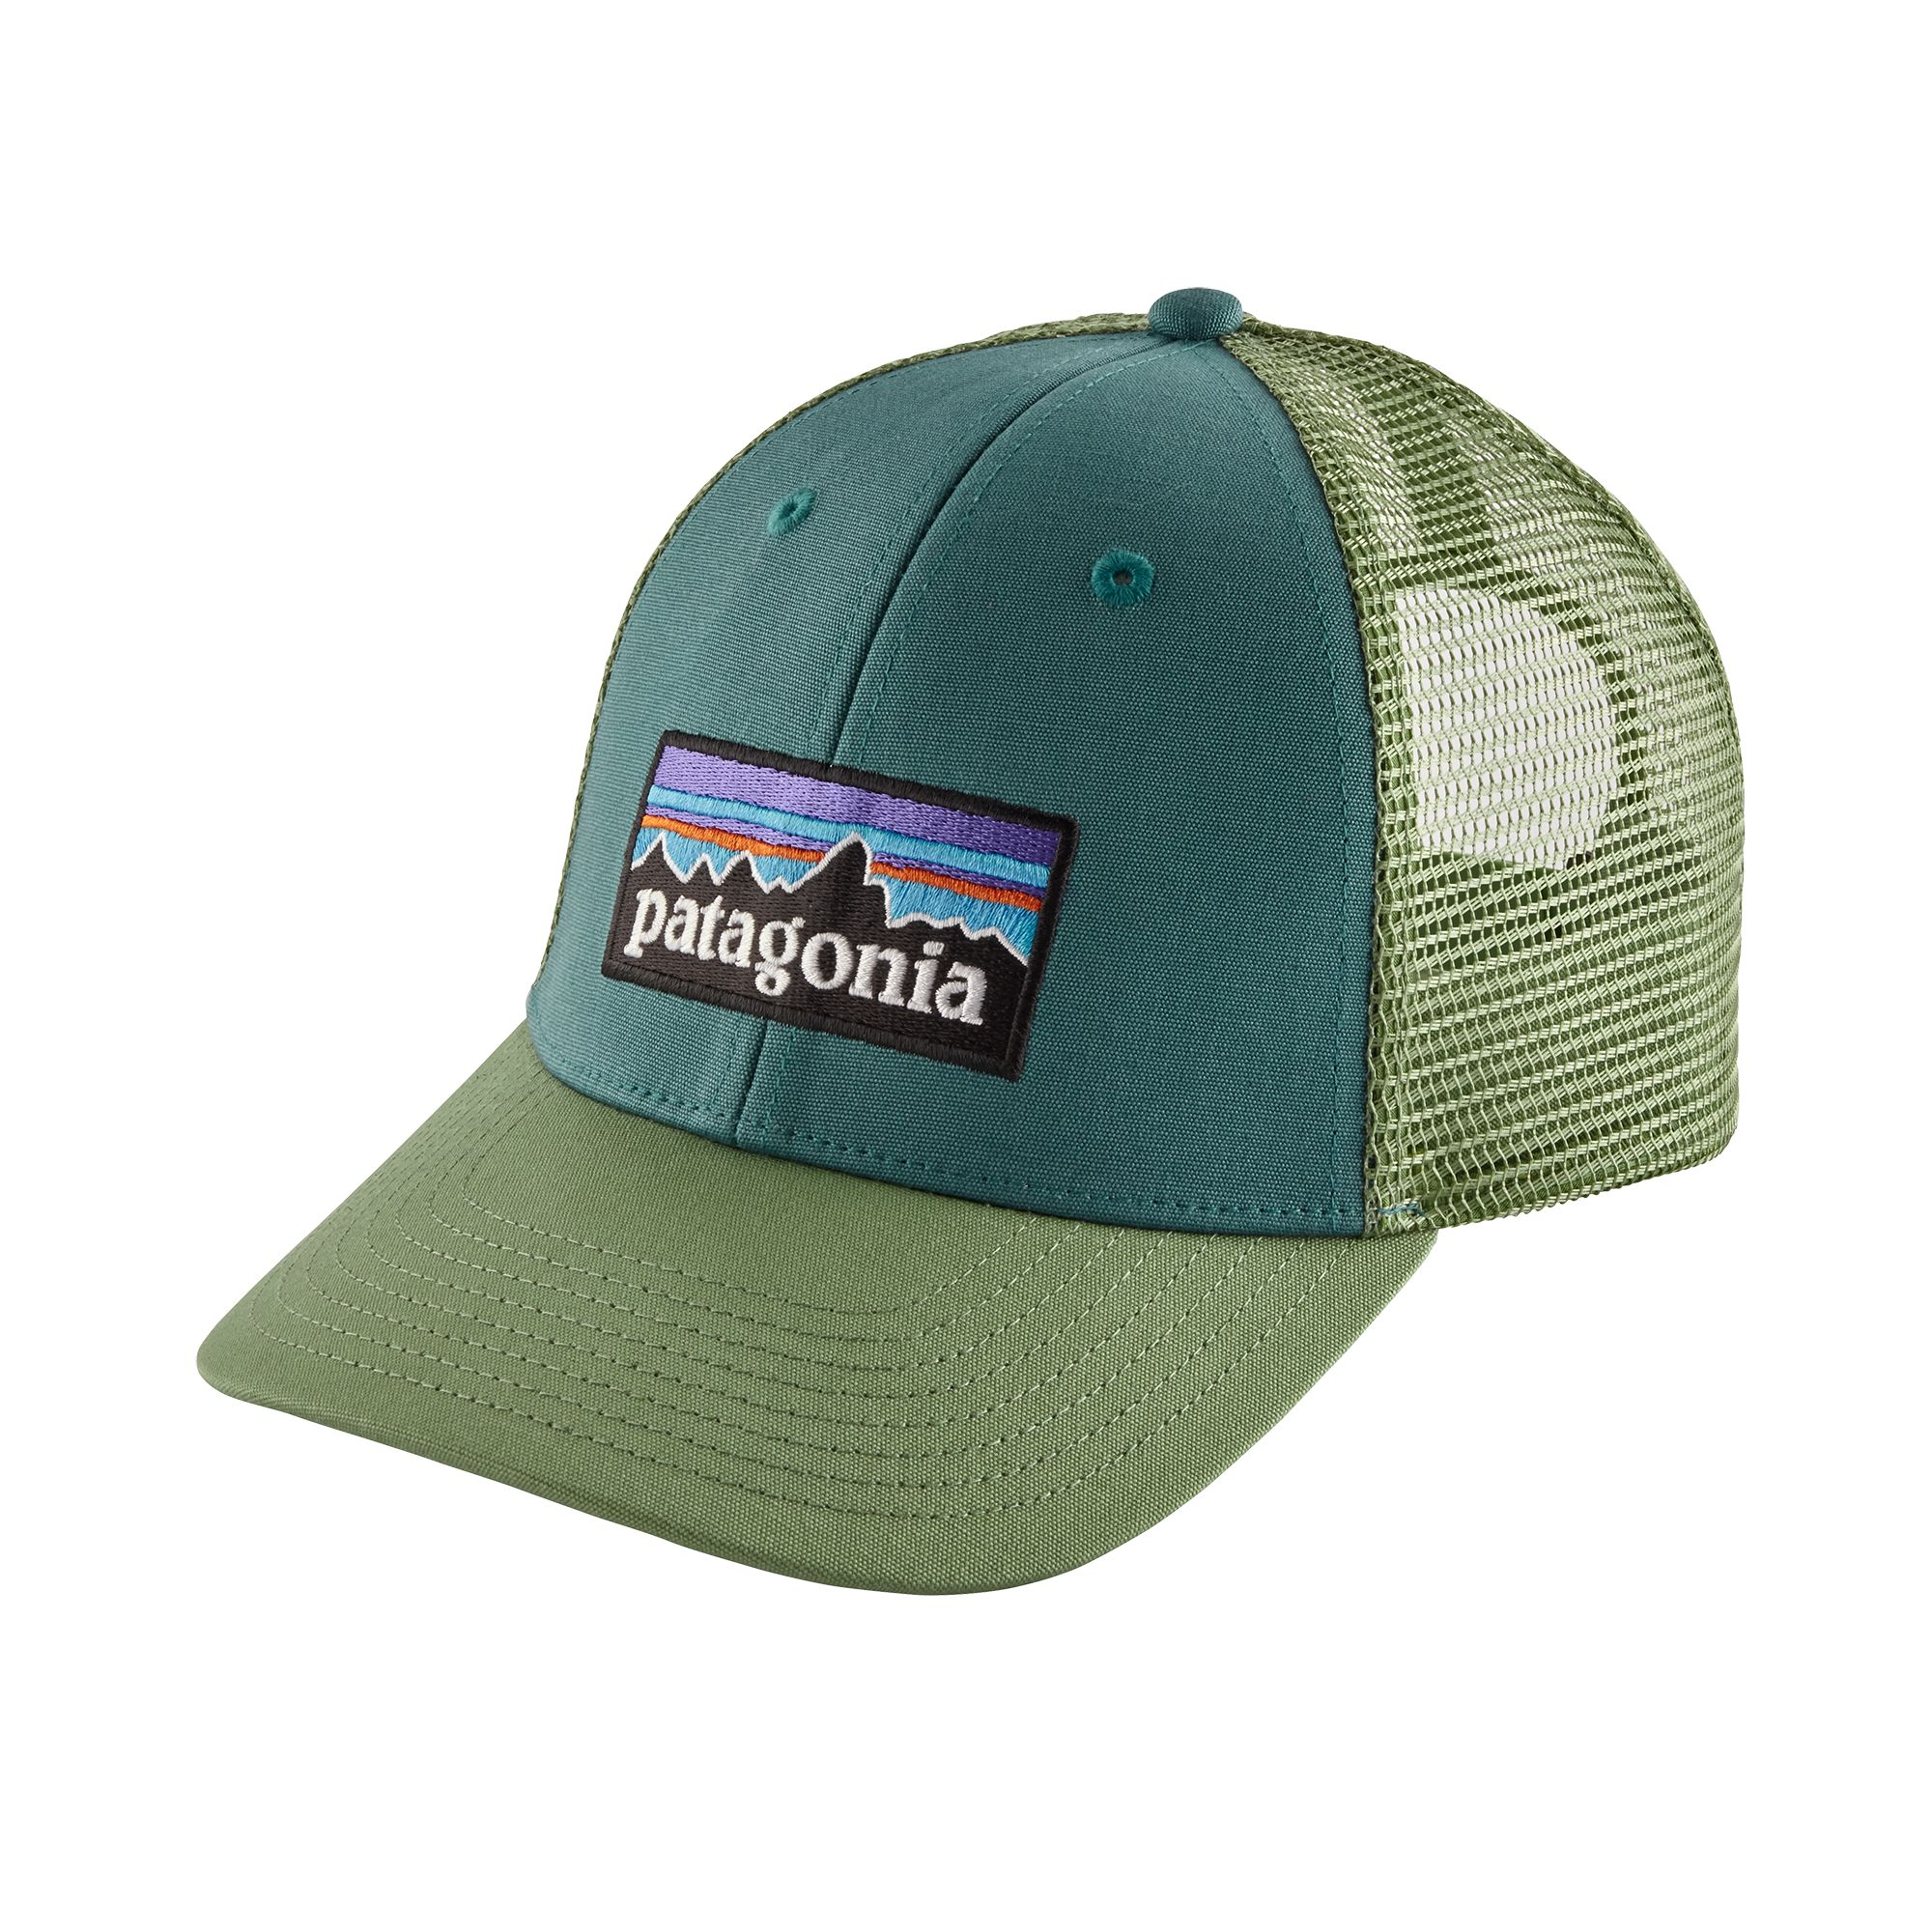 84a361b2 Patagonia P-6 LoPro Trucker Hat Summer 2019 for € 30.17 | Basecamp-shop